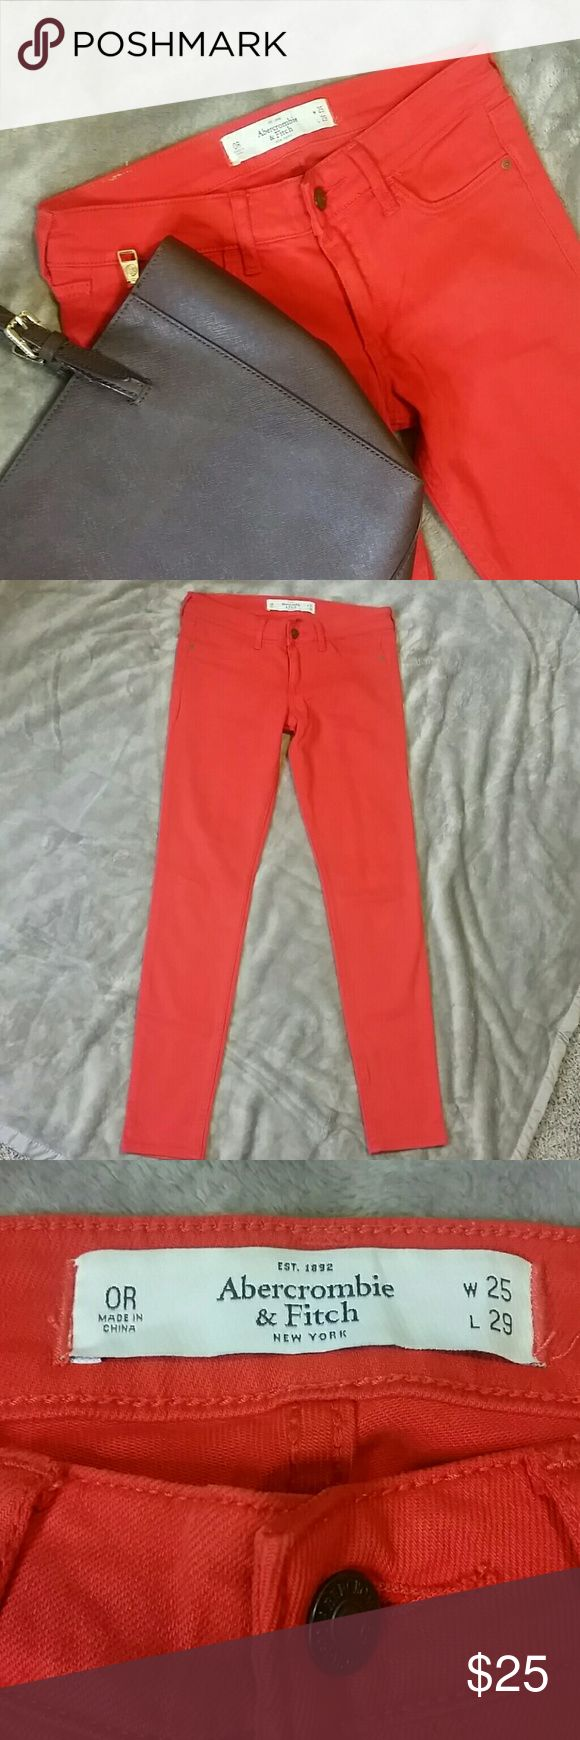 "Abercrombie & Finch Orange Skinny Stretch Sz 0R Abercrombie & Finch orange skinny jeans  Sz 0R  W25 L29 Lower in the front, no front pockets, 2 back pockets. Leg Opening: 5"" Never worn Abercrombie & Fitch Jeans Skinny"